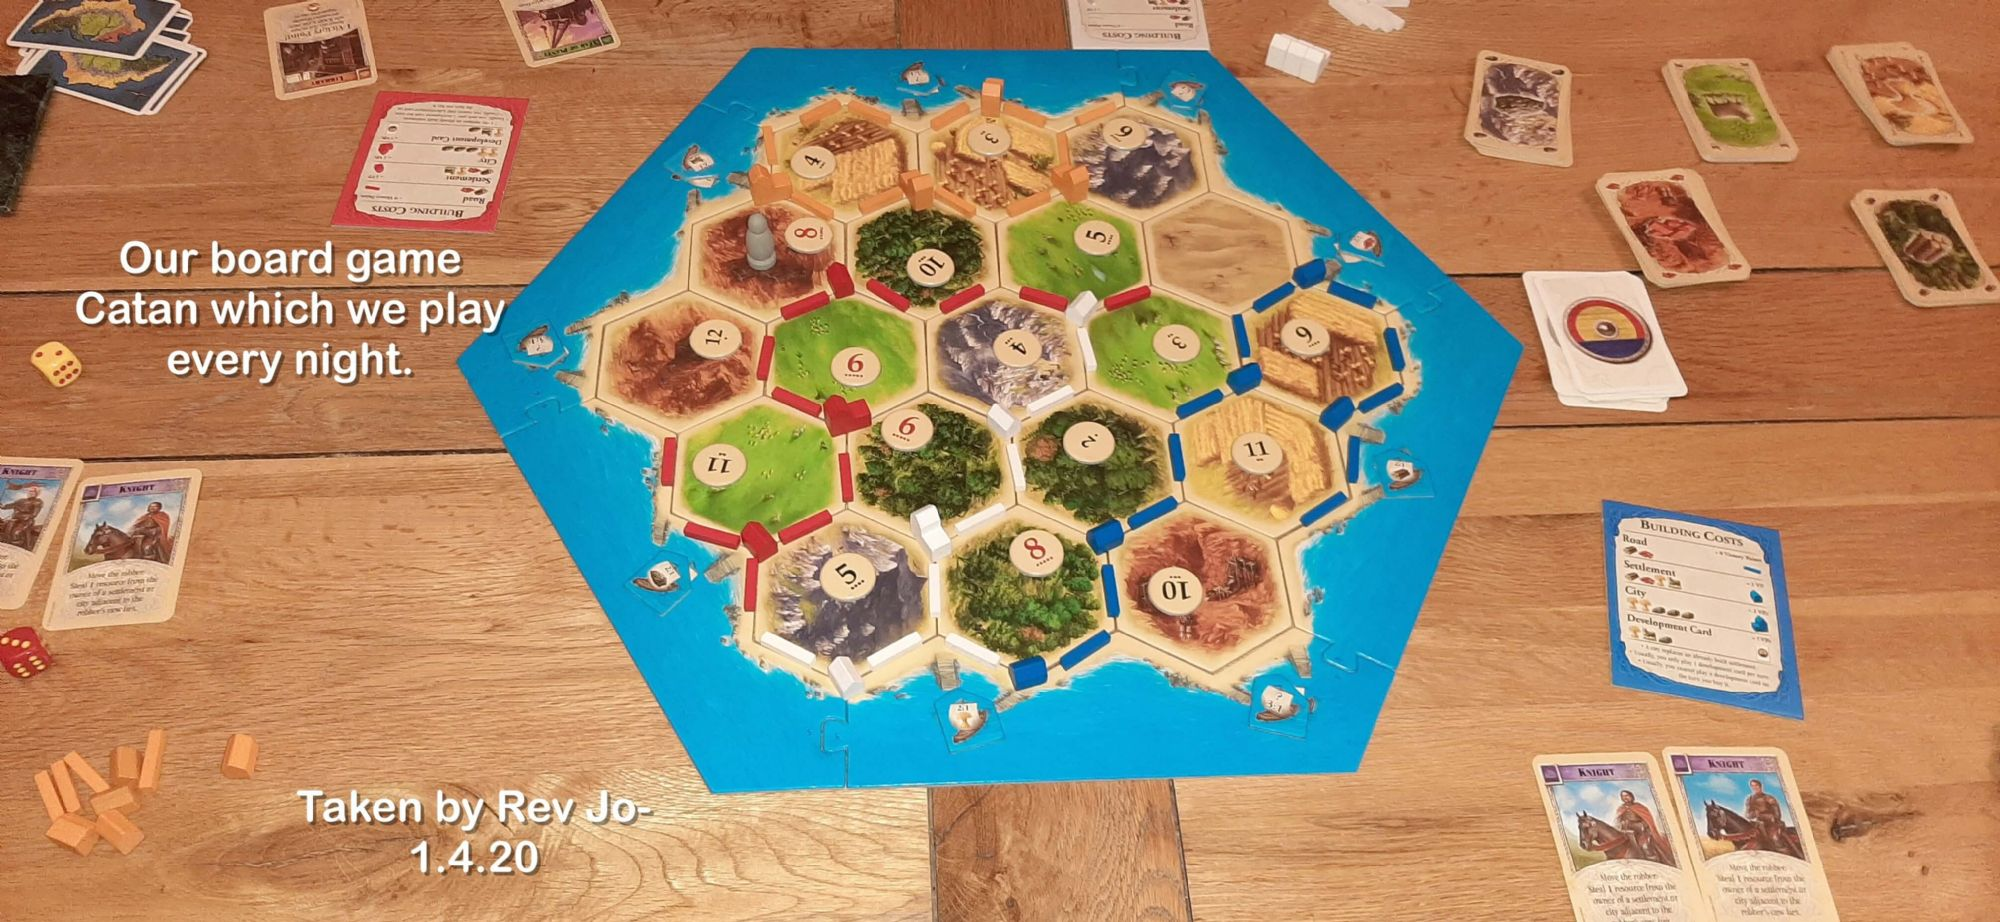 Our board game Catan which we play every night.